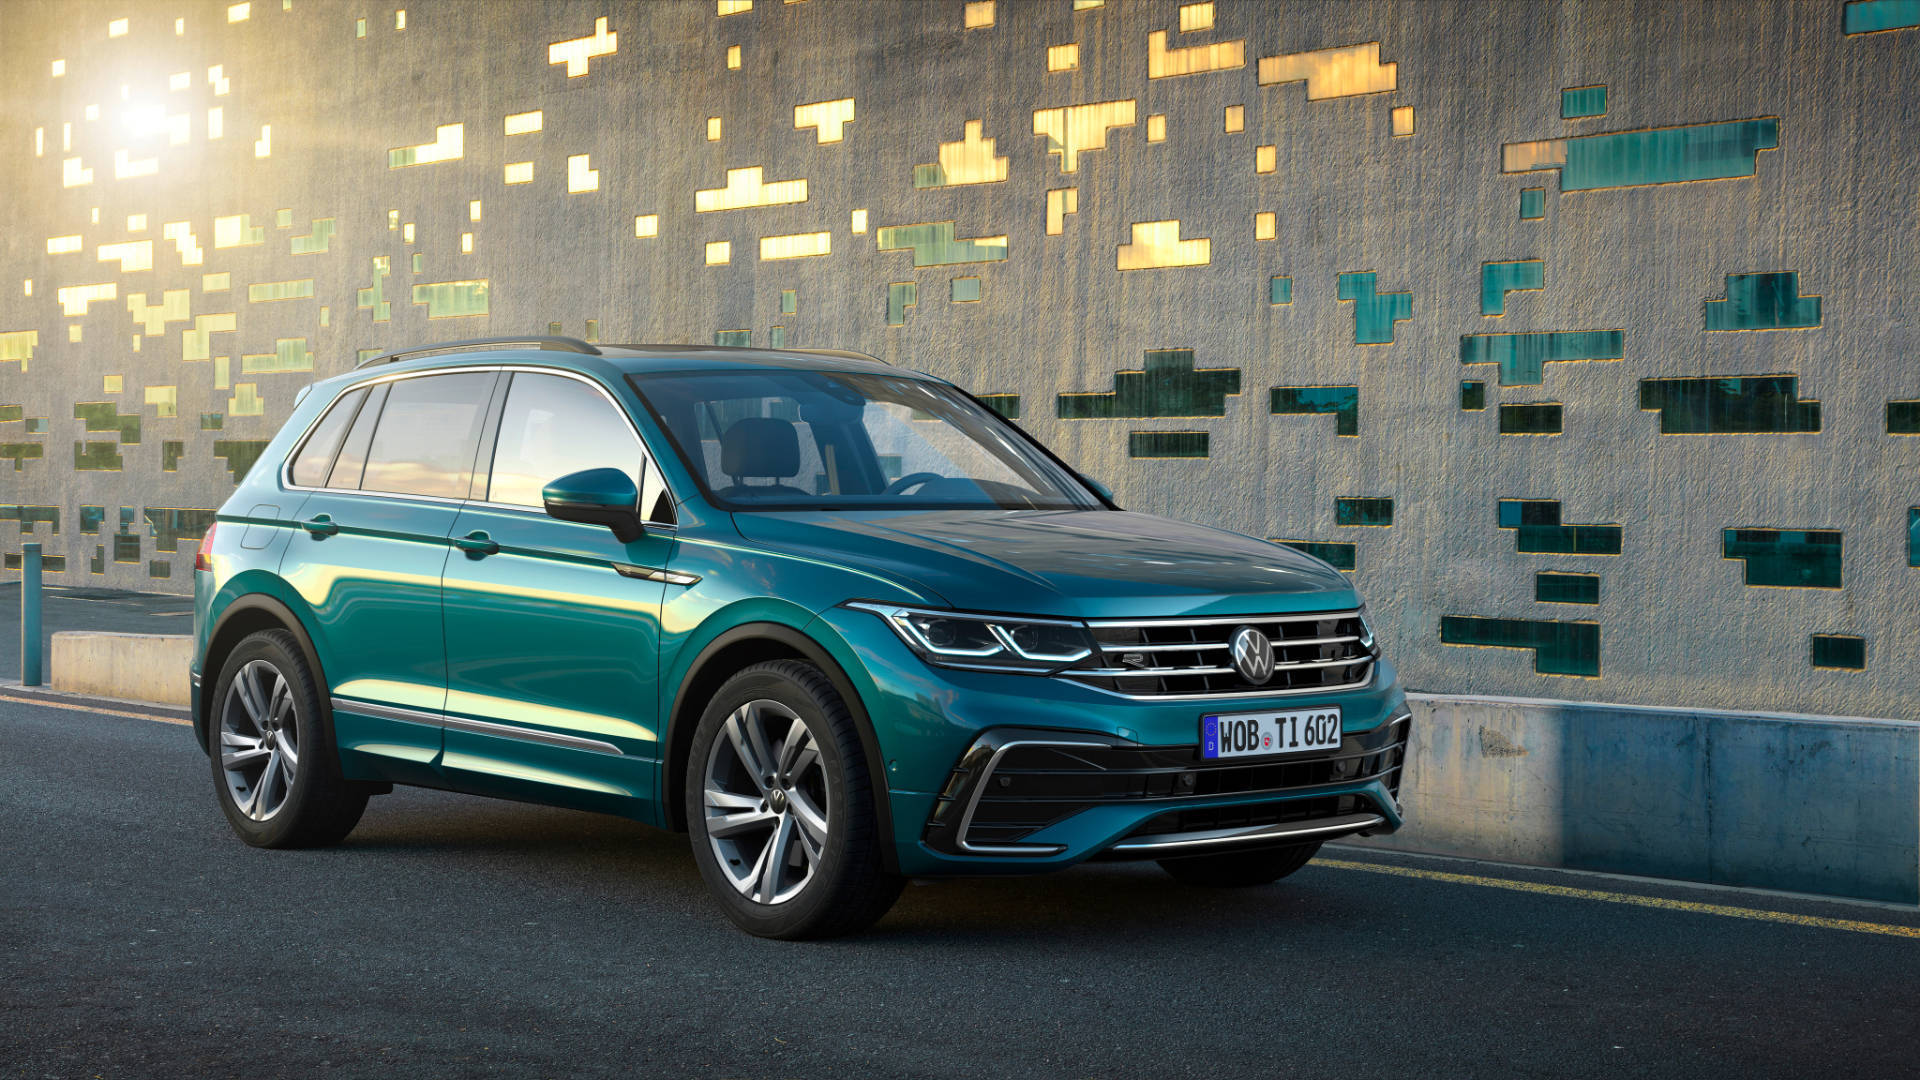 Volkswagen Tiguan facelift revealed